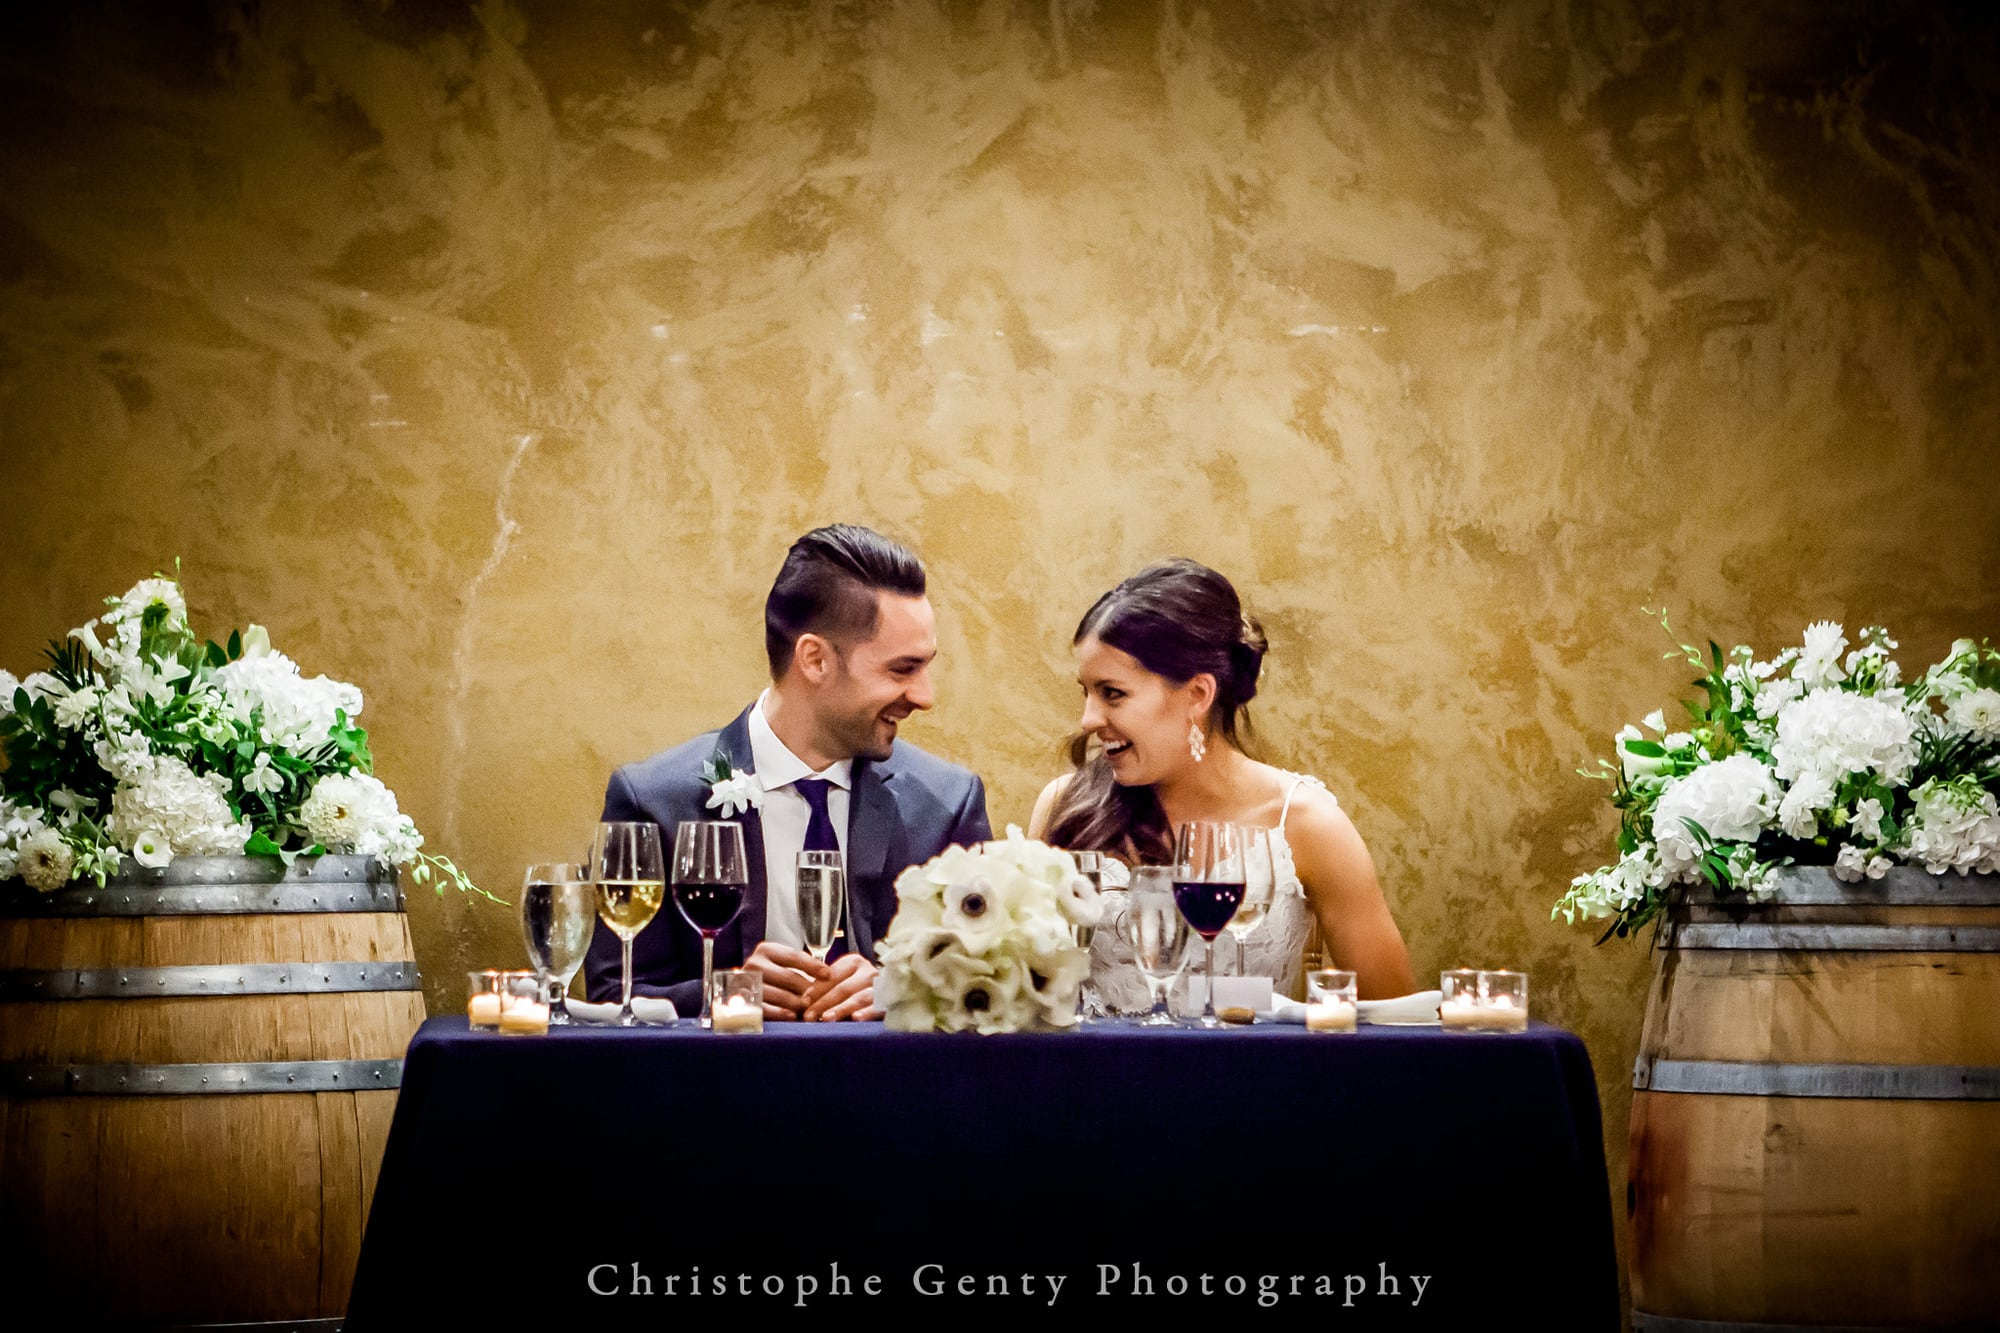 Wedding Photography at The Meritage Inn & Spa, Napa CA